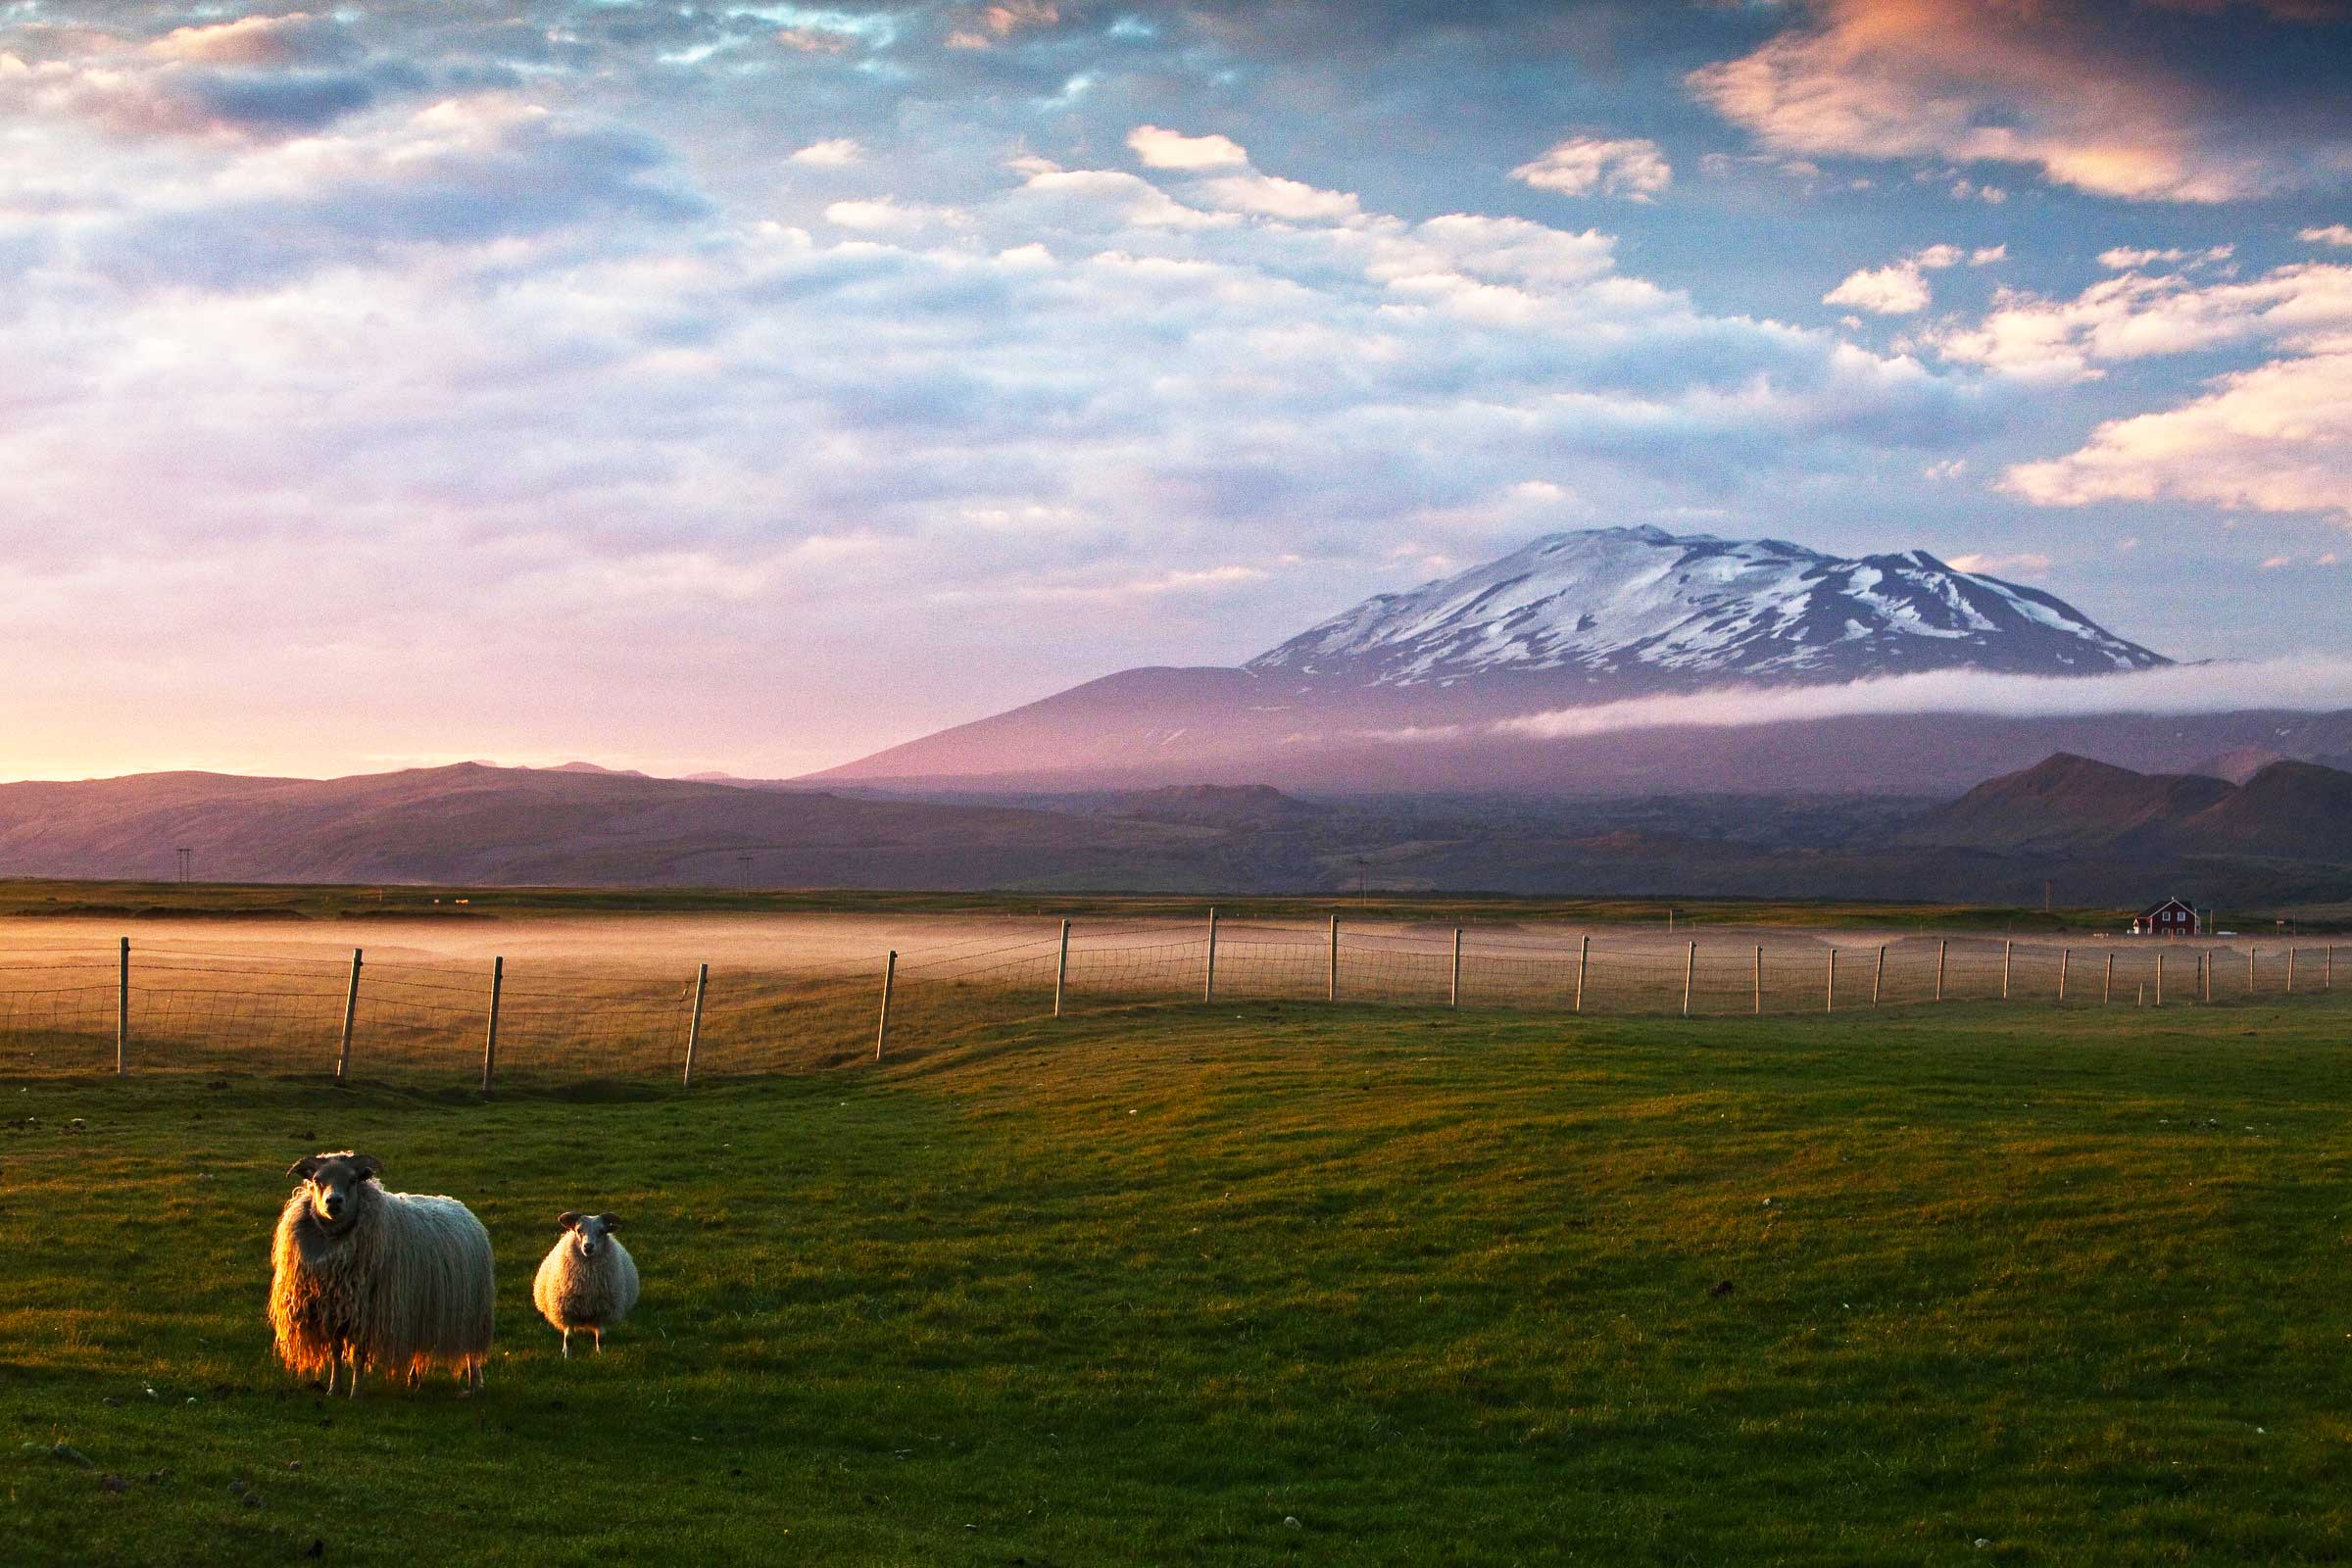 Iceland landscape with Hekla volcano in the background. Hekla most active volcano in Iceland